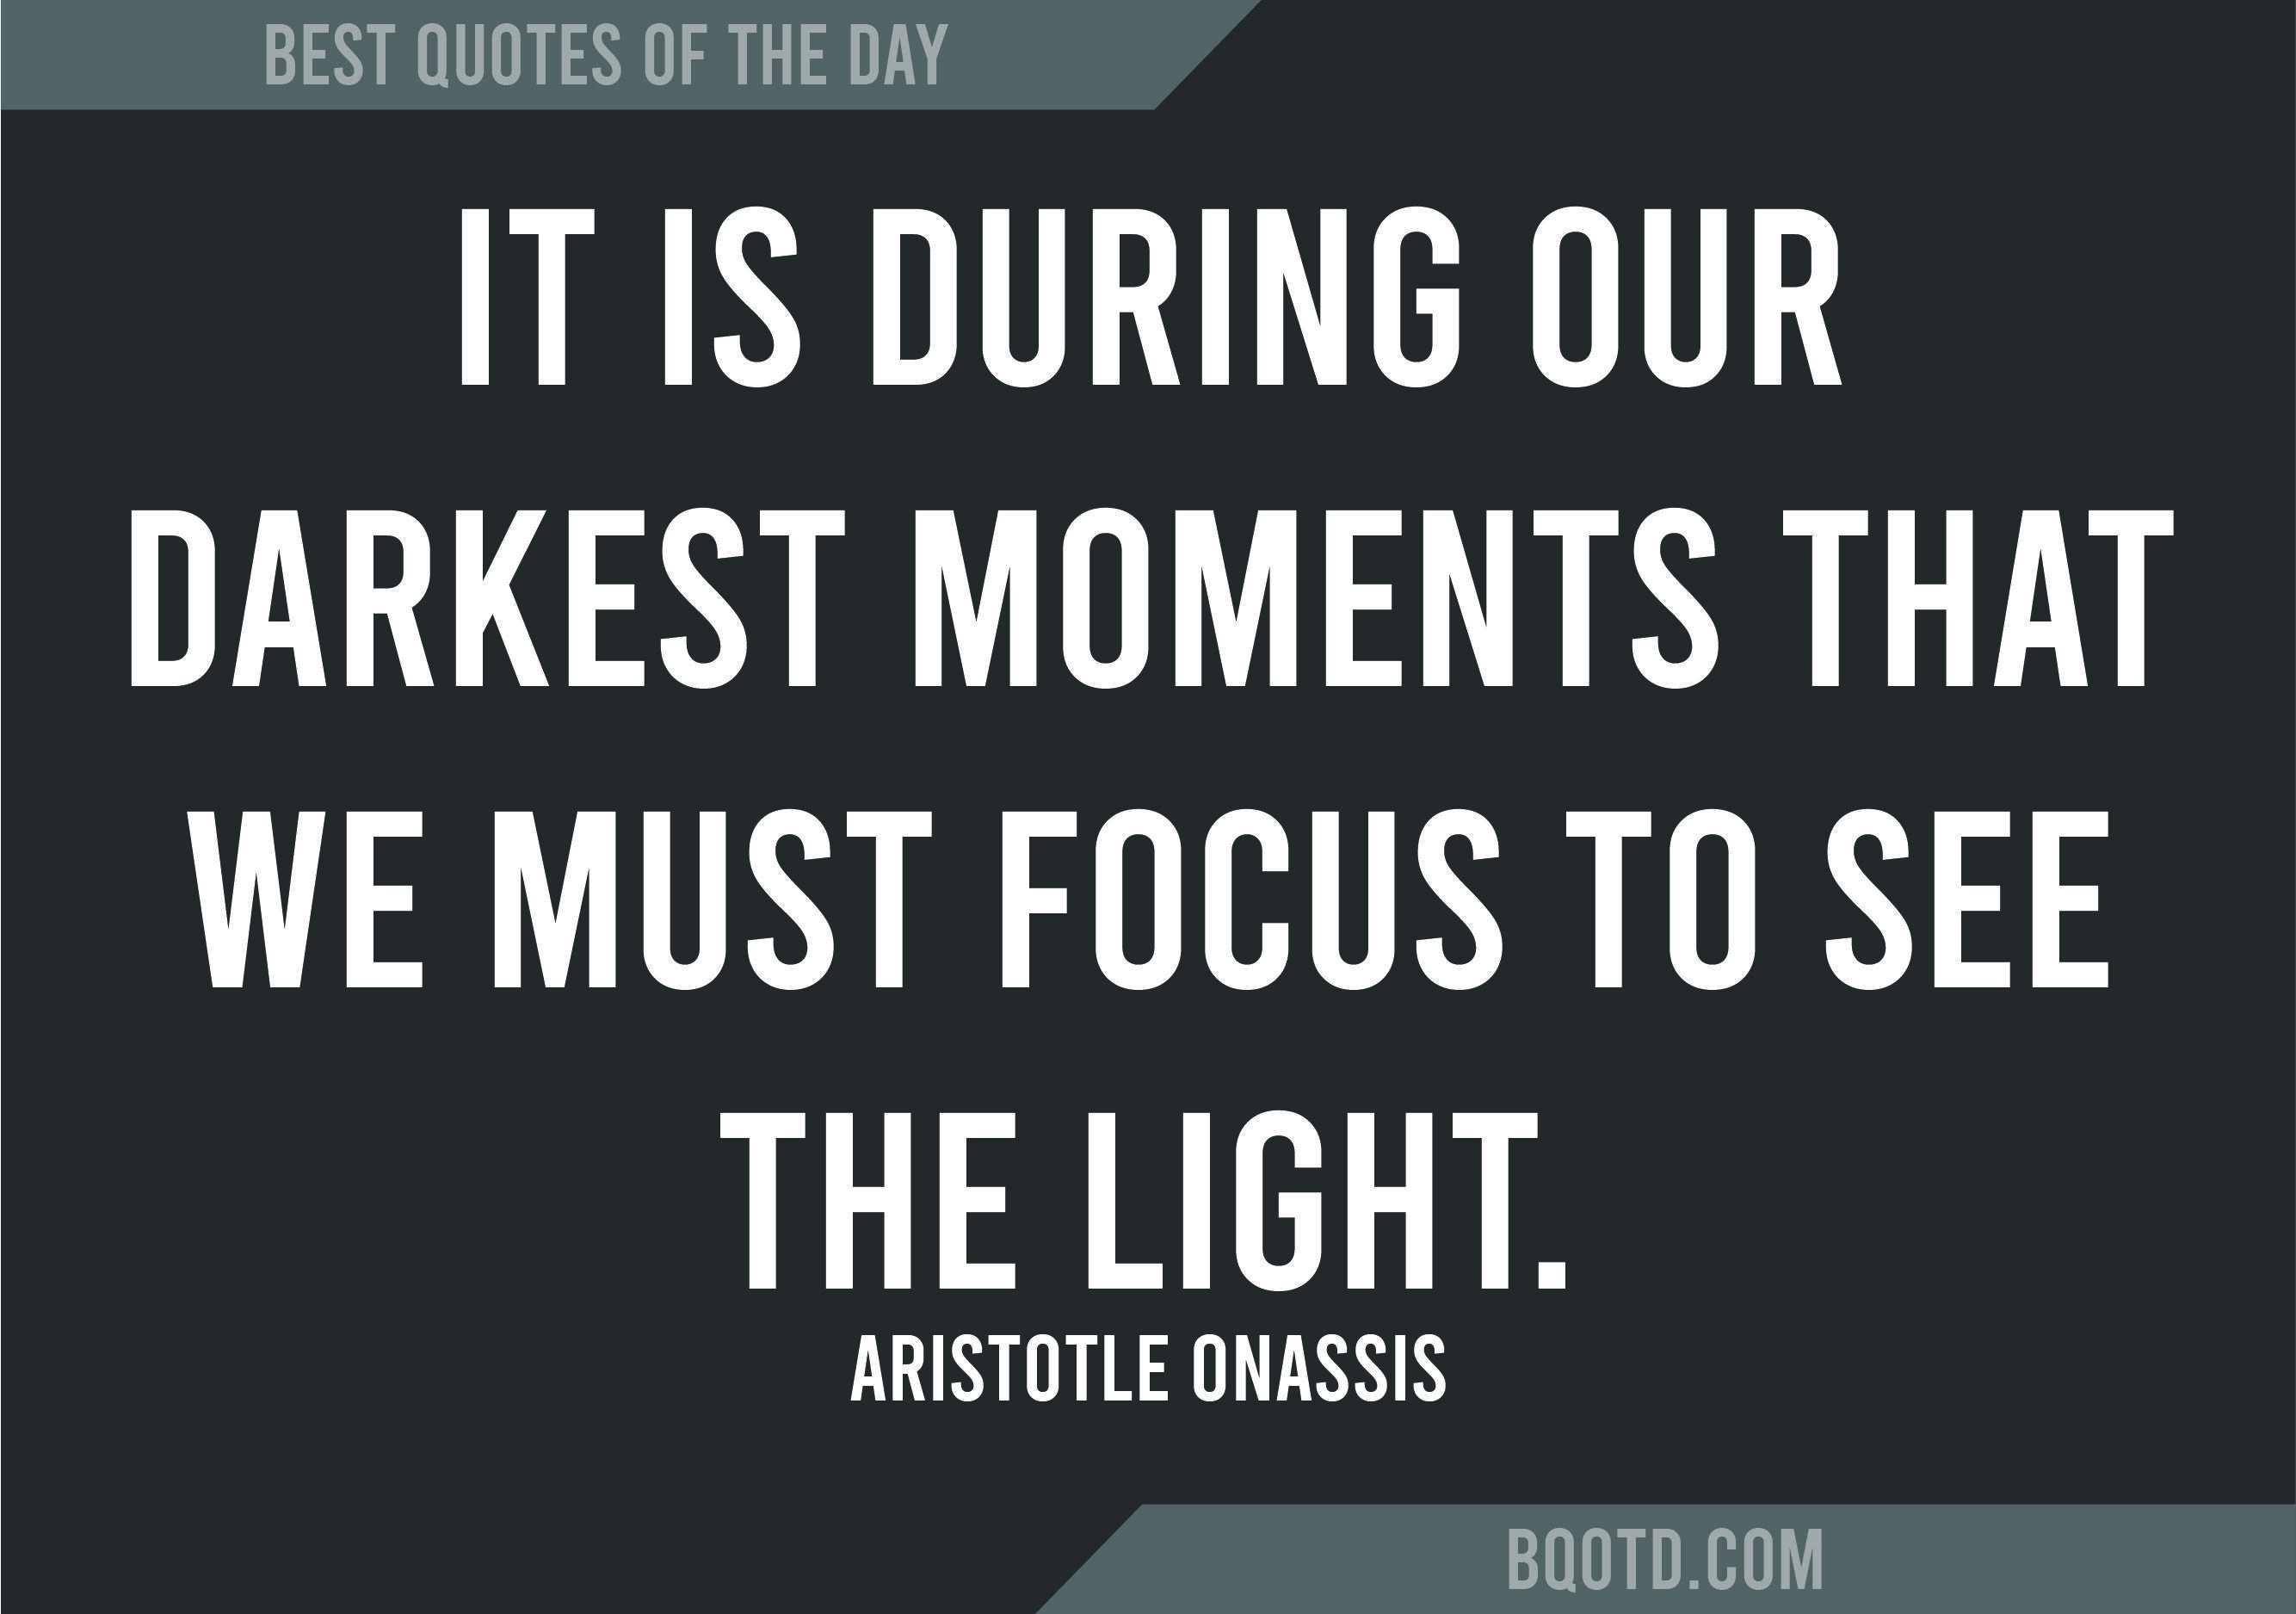 It Is During Our Darkest Moments That We Must Focus To See The Light Aristotle Onassis Bestquotesoftheday Best Quotes Quote Of The Day Inspirational Thoughts